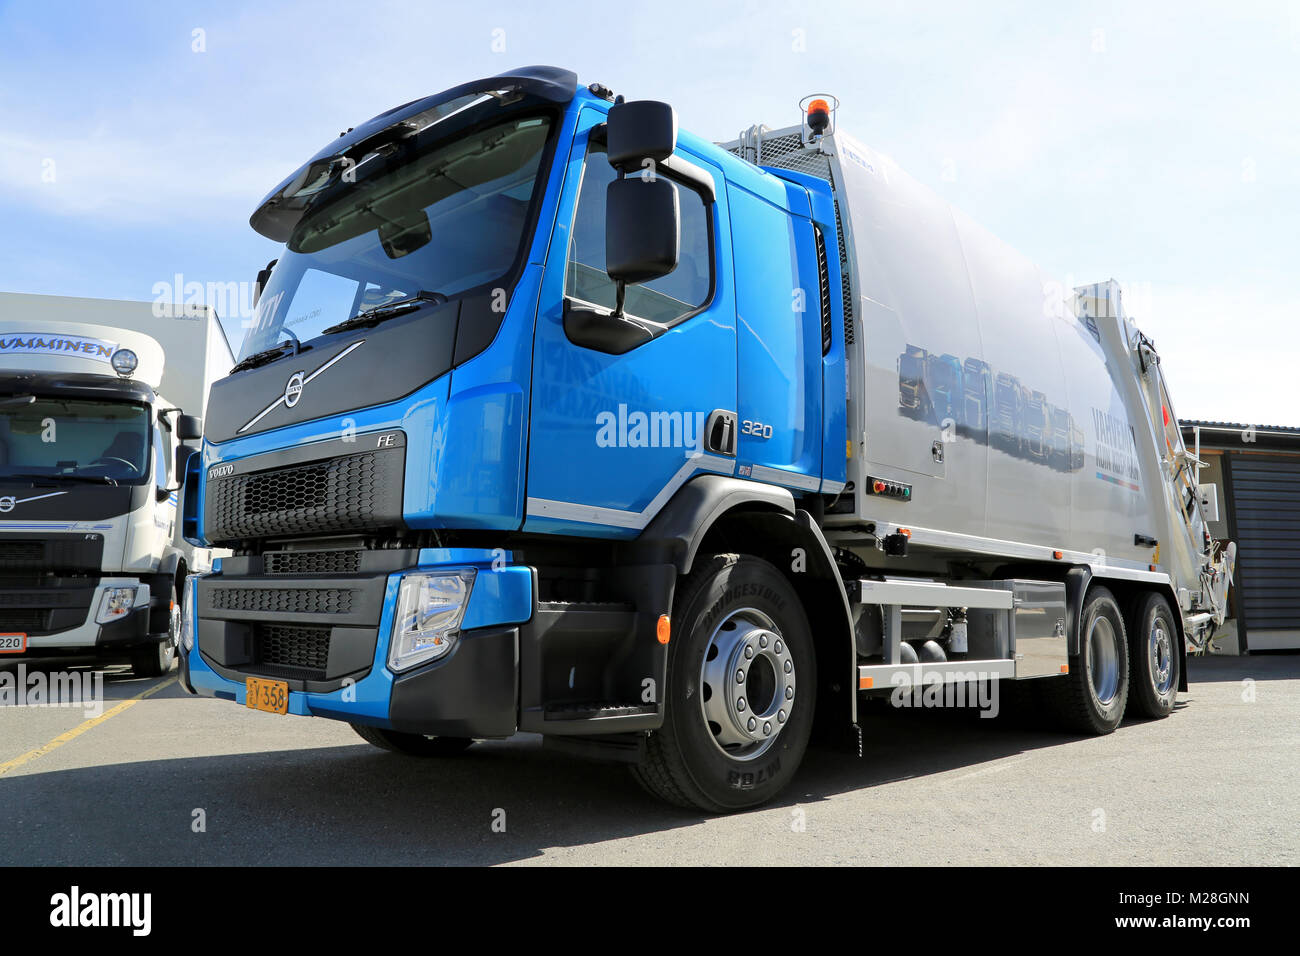 LIETO, FINLAND - APRIL 5, 2014: Volvo Trucks presents the new FE as part of their new range at Volvo Trucks and - Stock Image